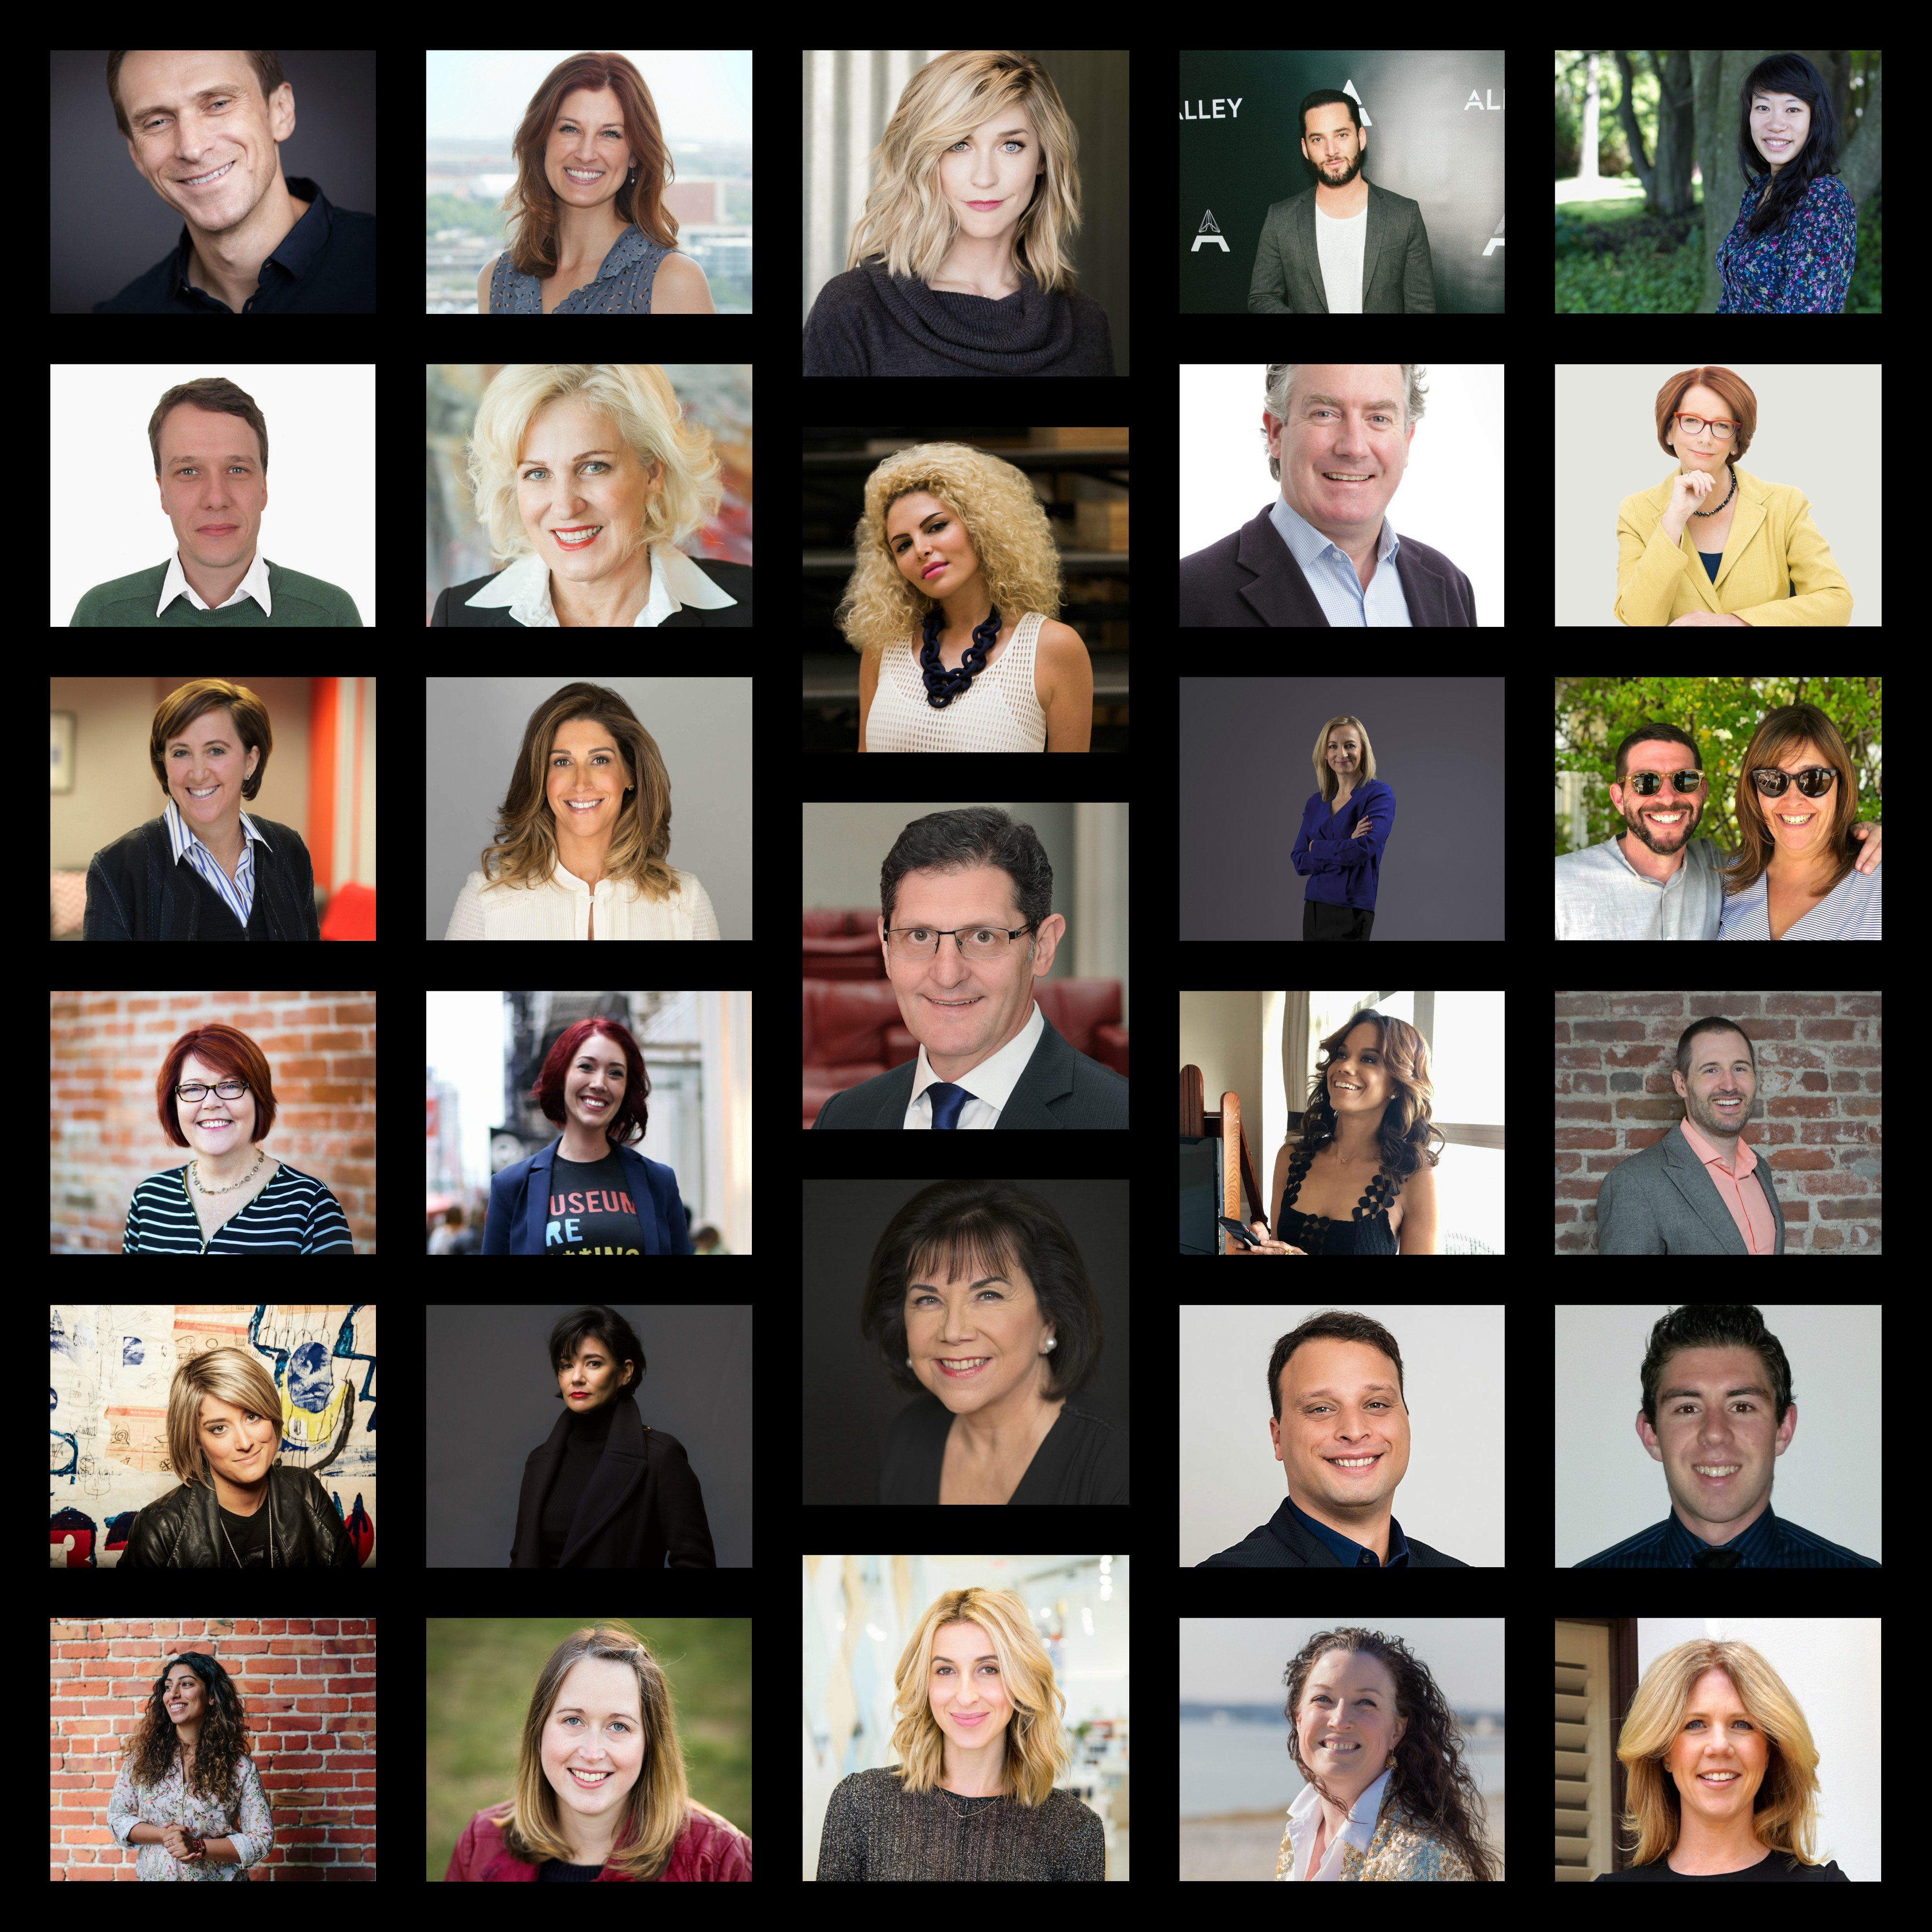 Falling Into Belief Gap What It Feels >> These 29 Executives Show How We Can Close The Gender Wage Gap